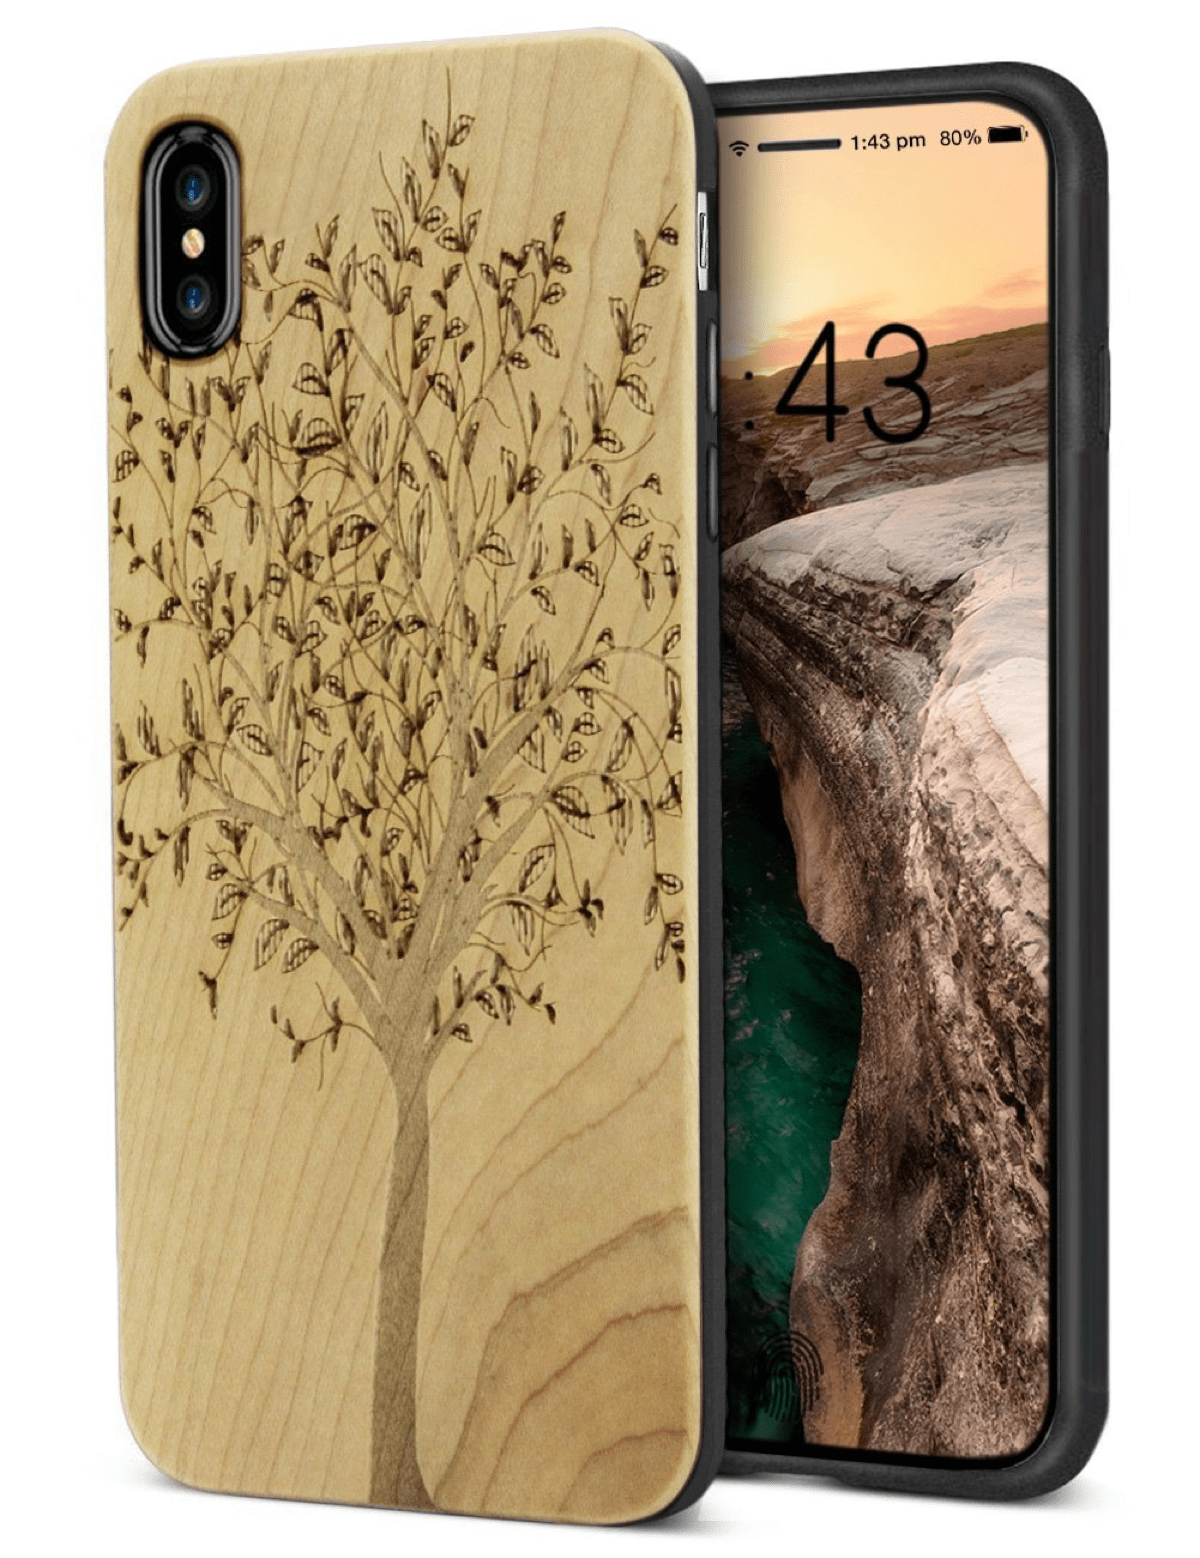 YF-wood wooden carving iPhone X bling cases.